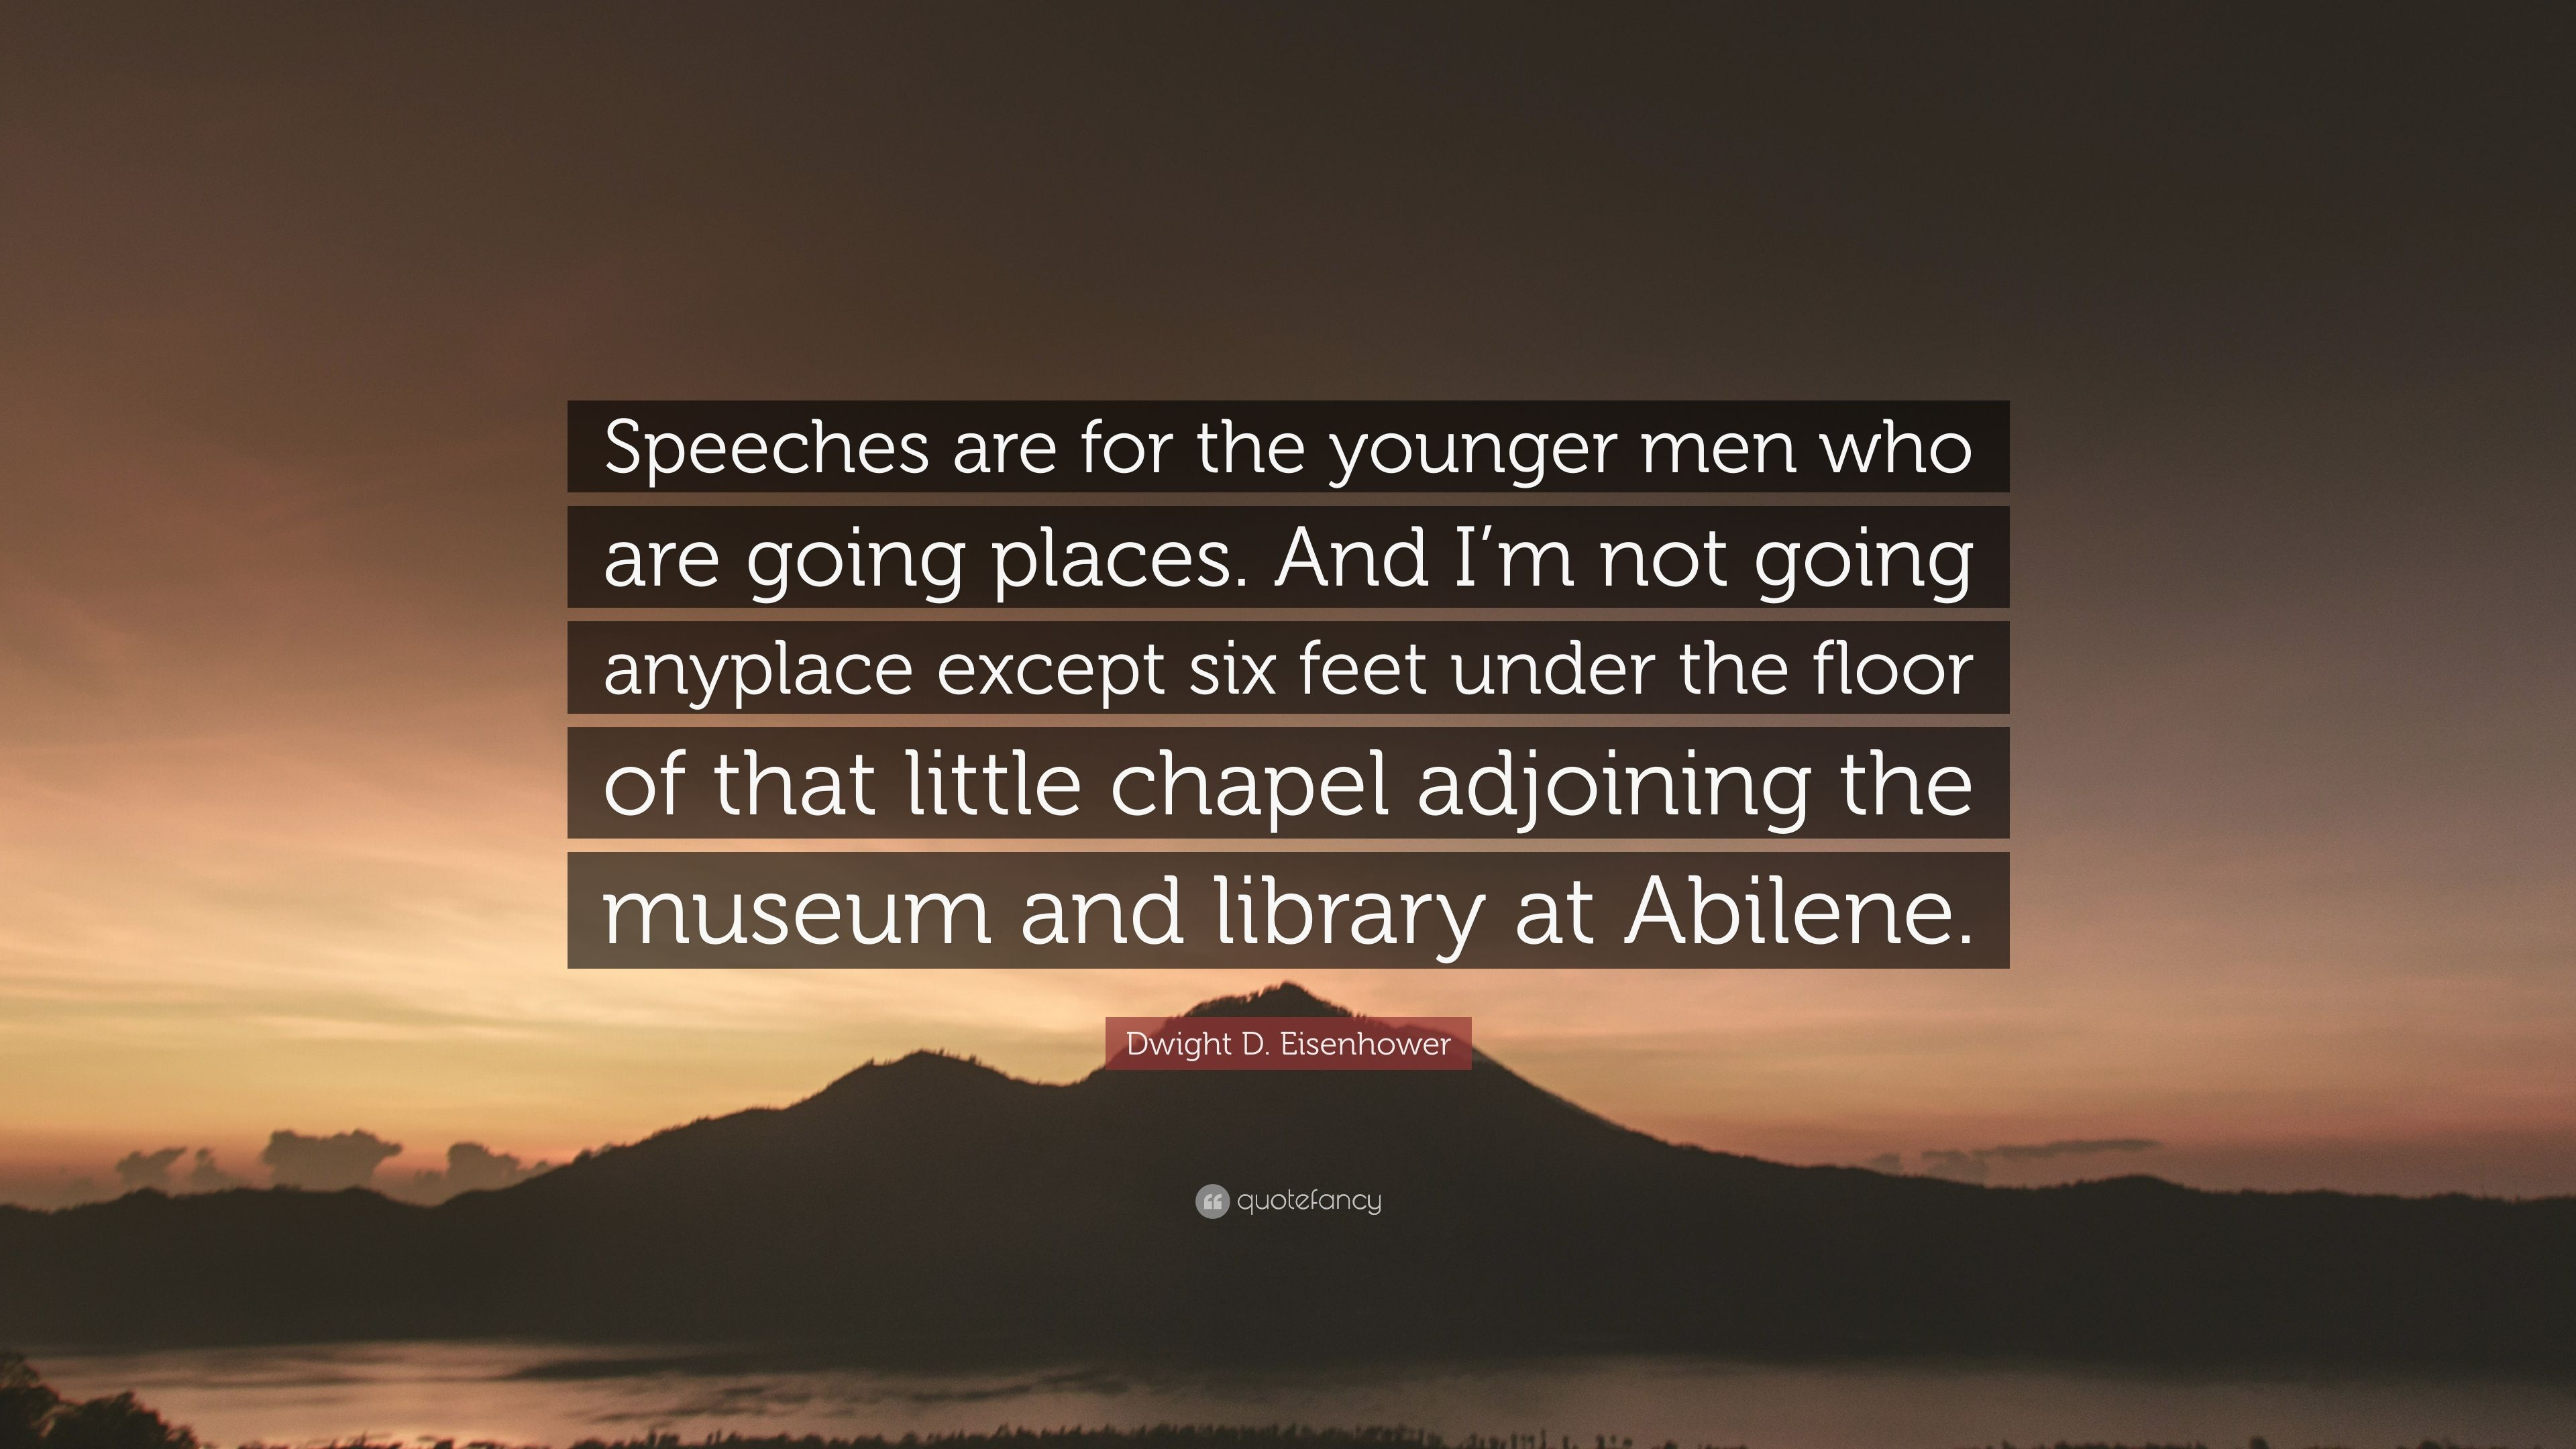 Dwight D Eisenhower Quote Speeches Are For The Younger Men Who